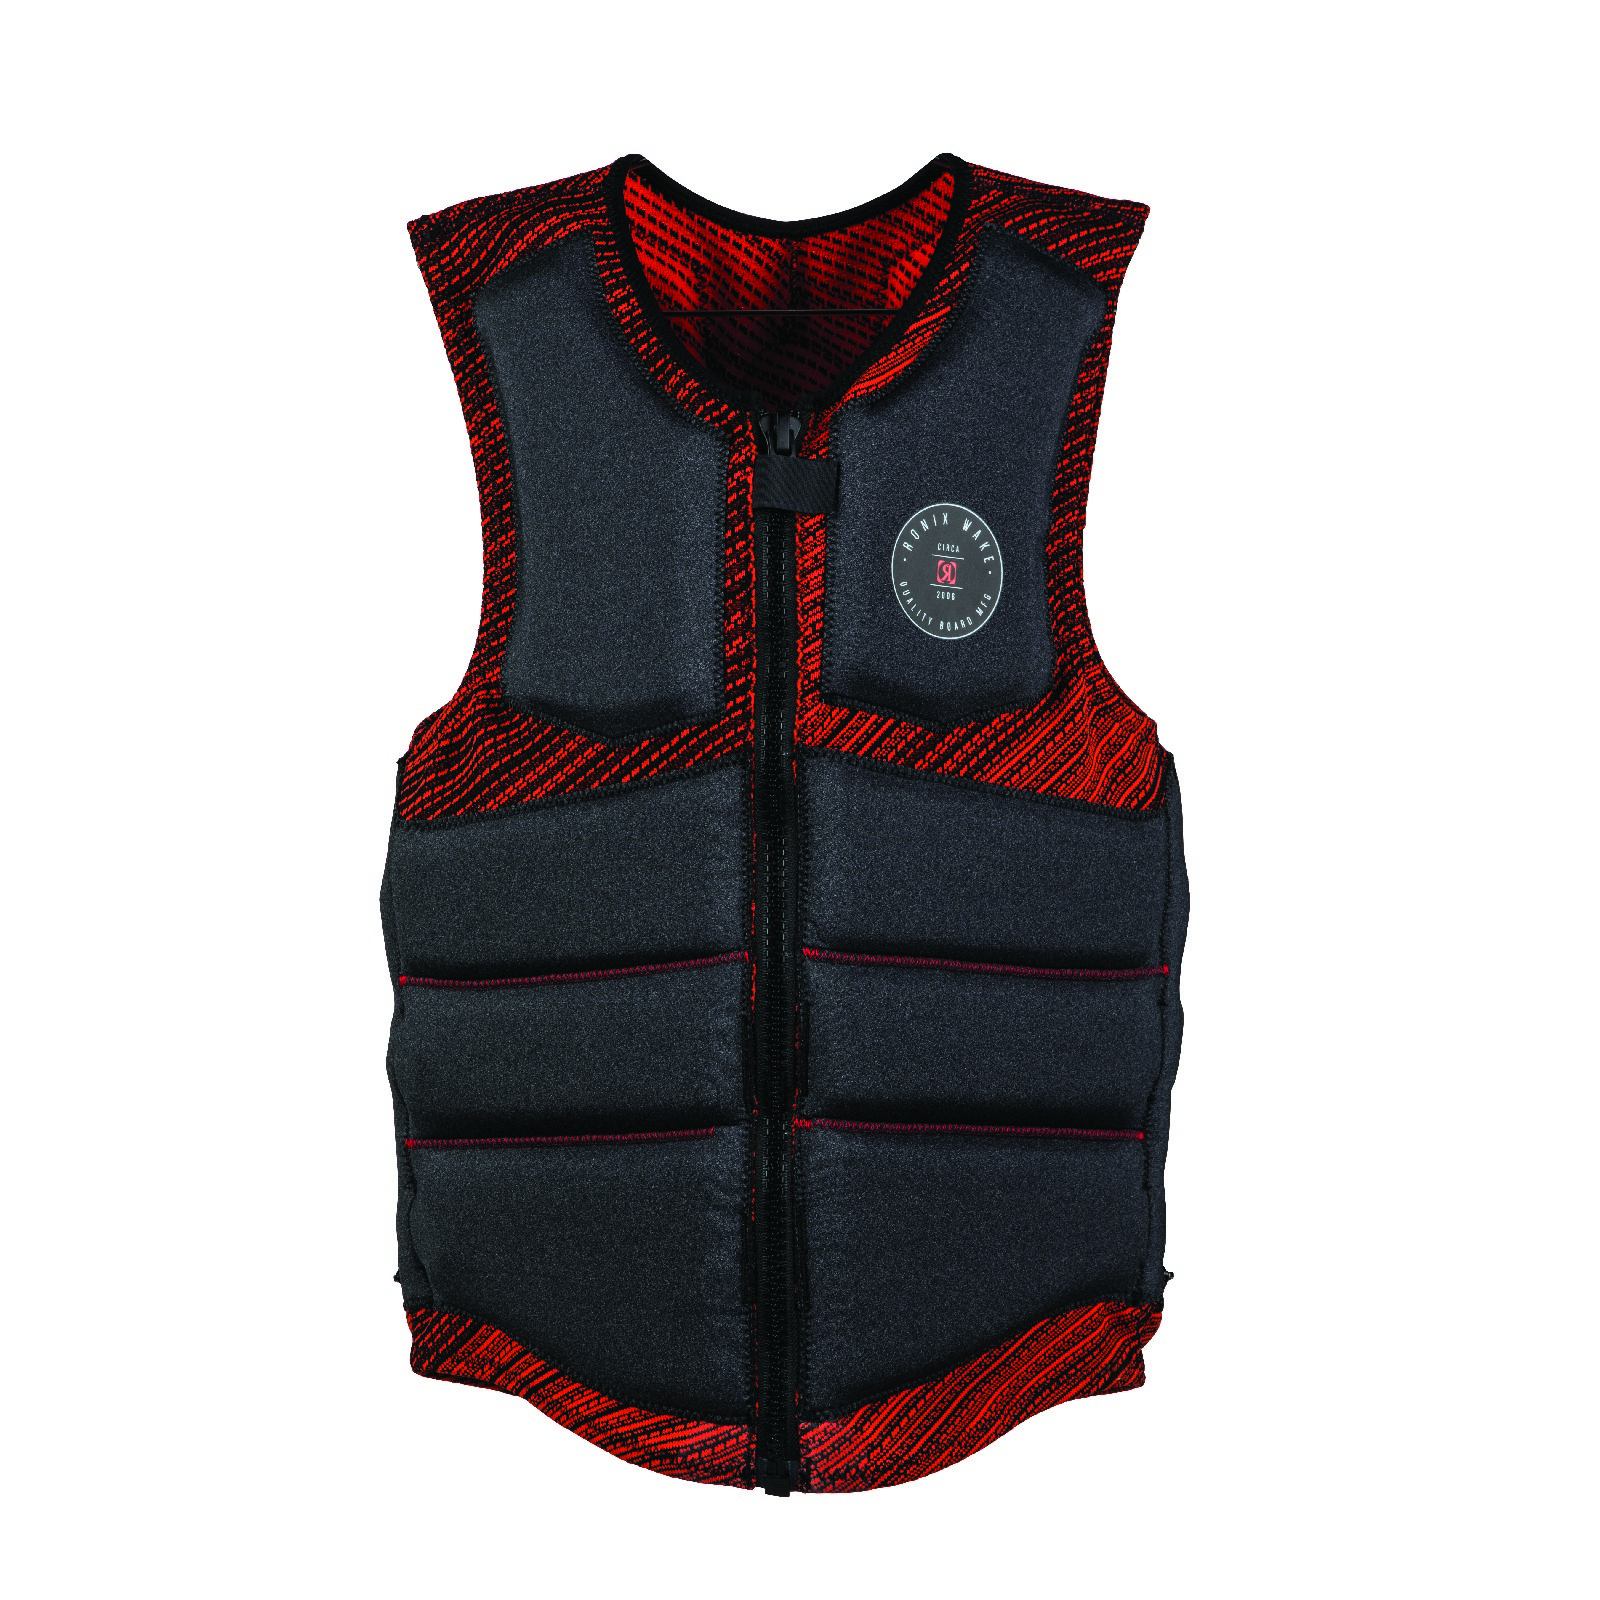 ONE CUSTOM FIT BOA VEST RONIX 2019